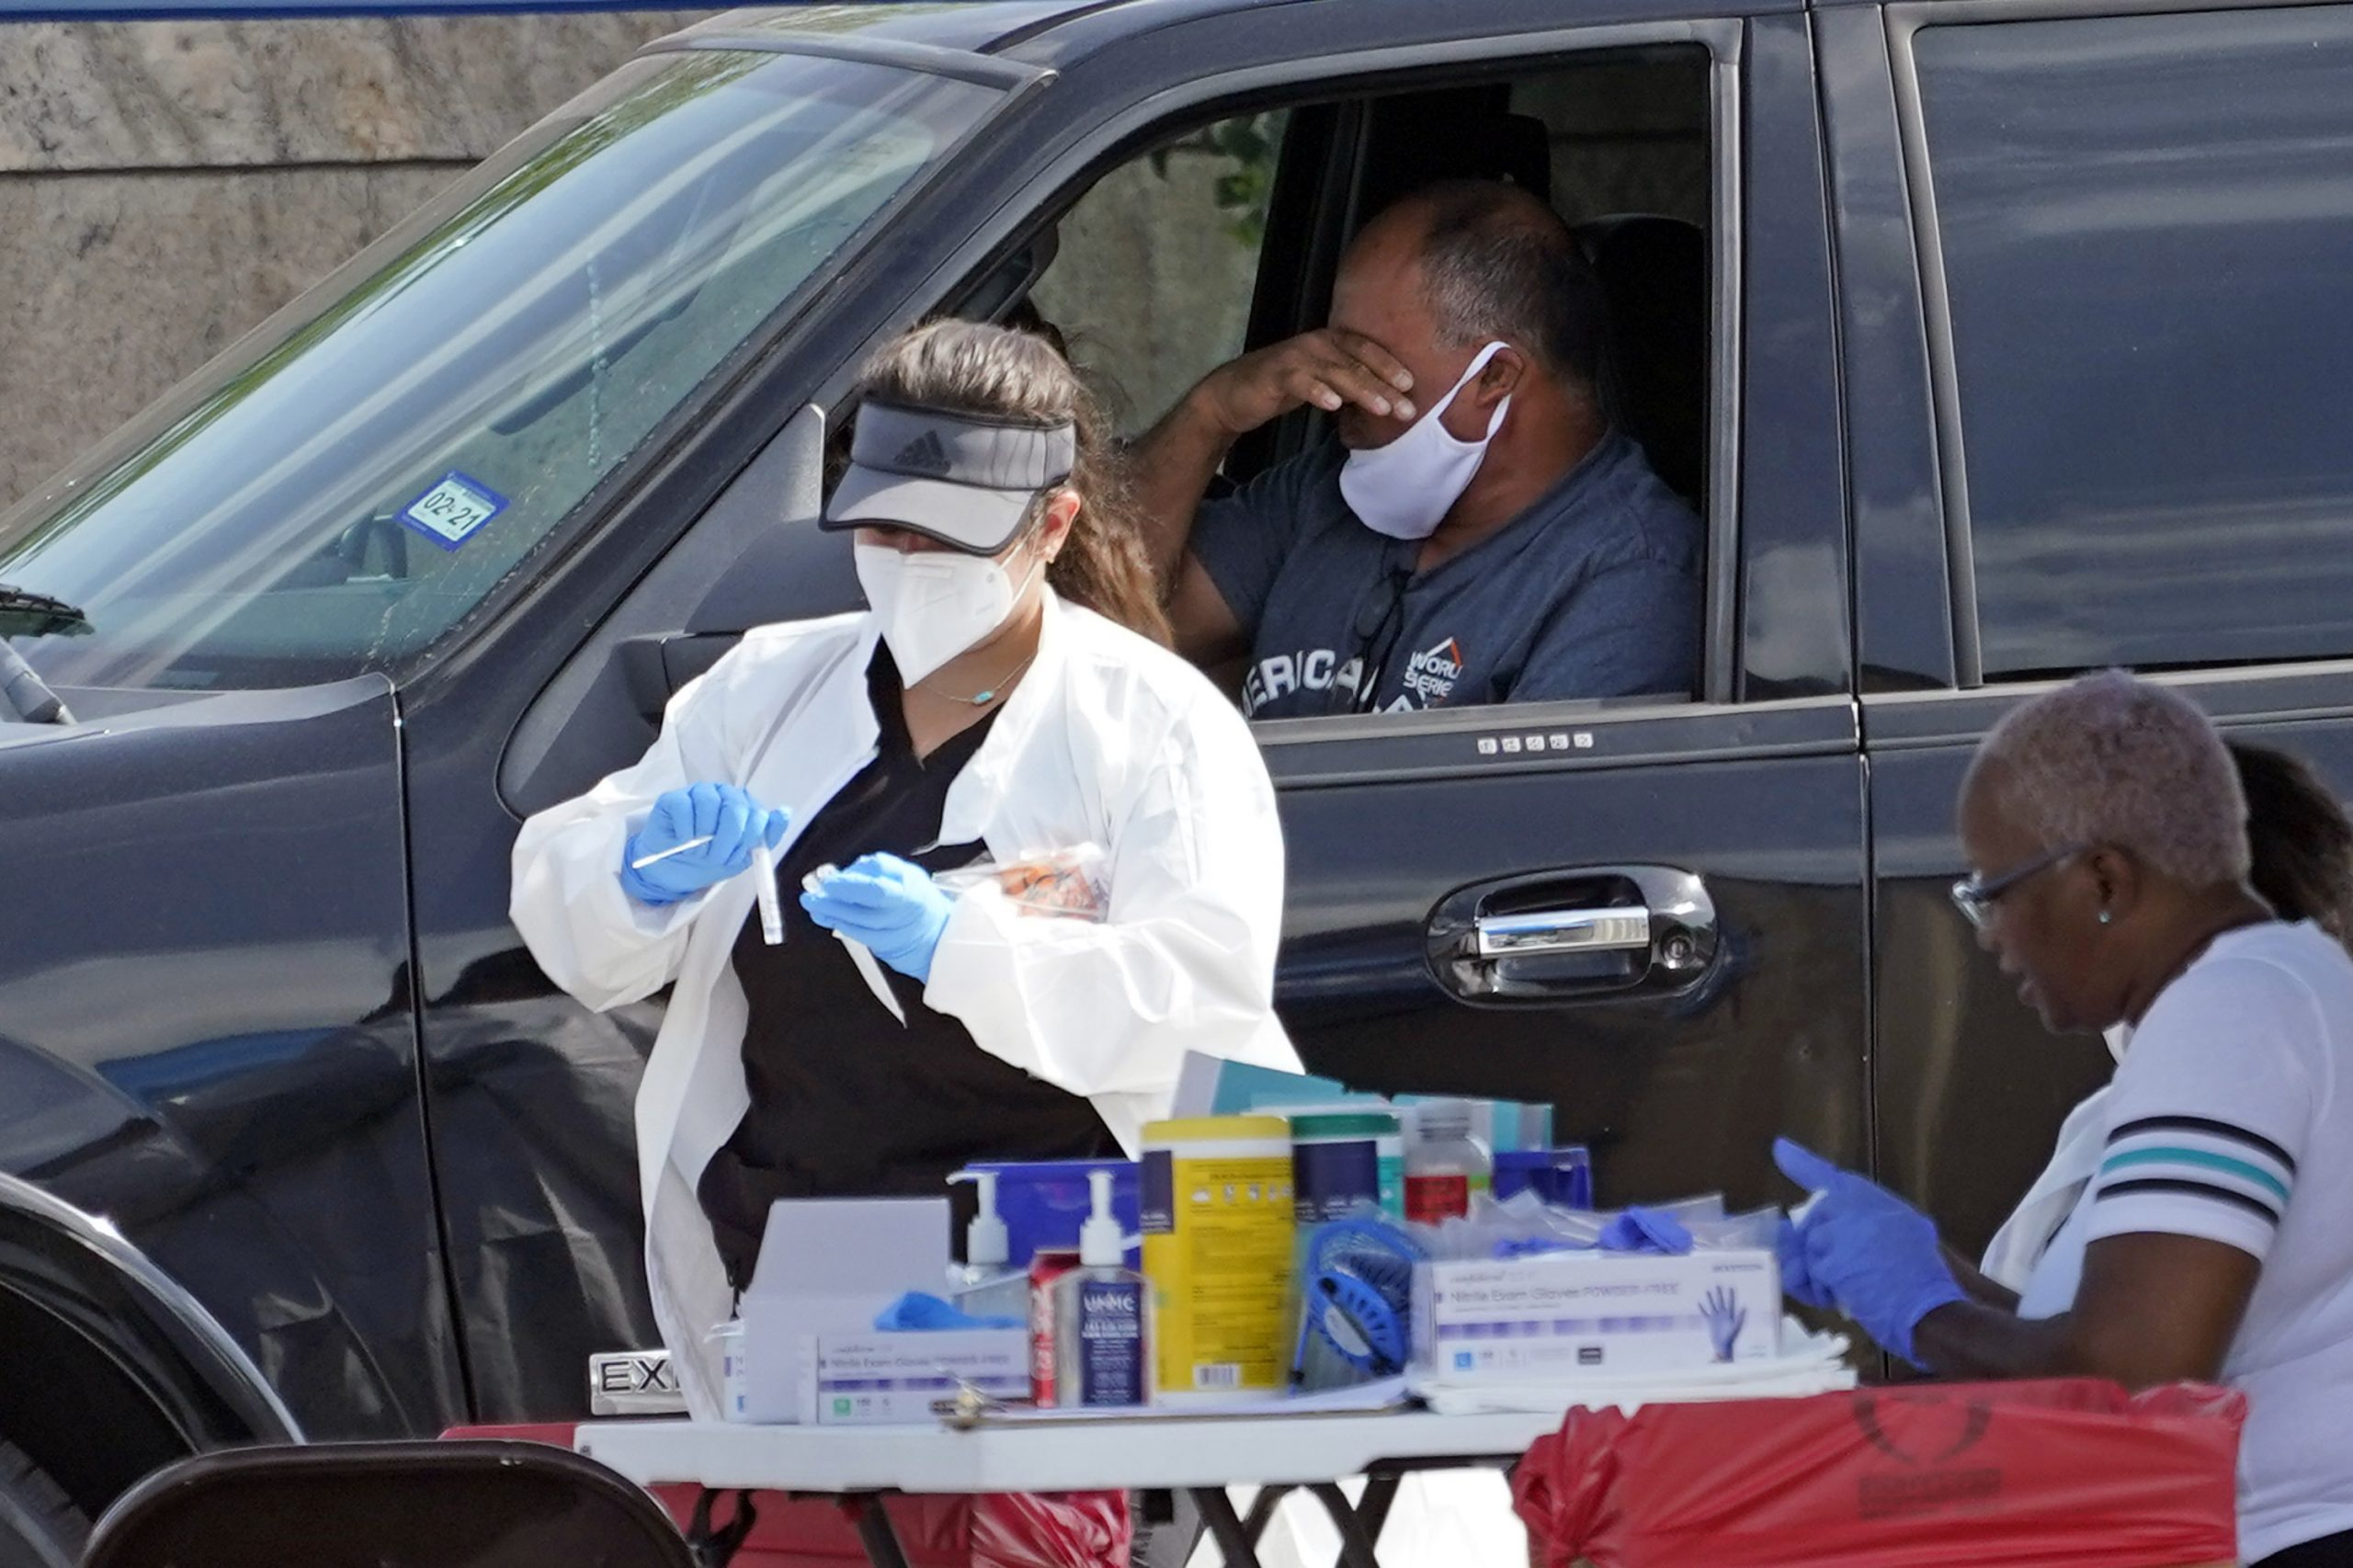 Coronavirus In Greater Houston Third Straight Day Of Record Covid 19 Deaths In Texas 11 More Die In Houston Houston Public Media